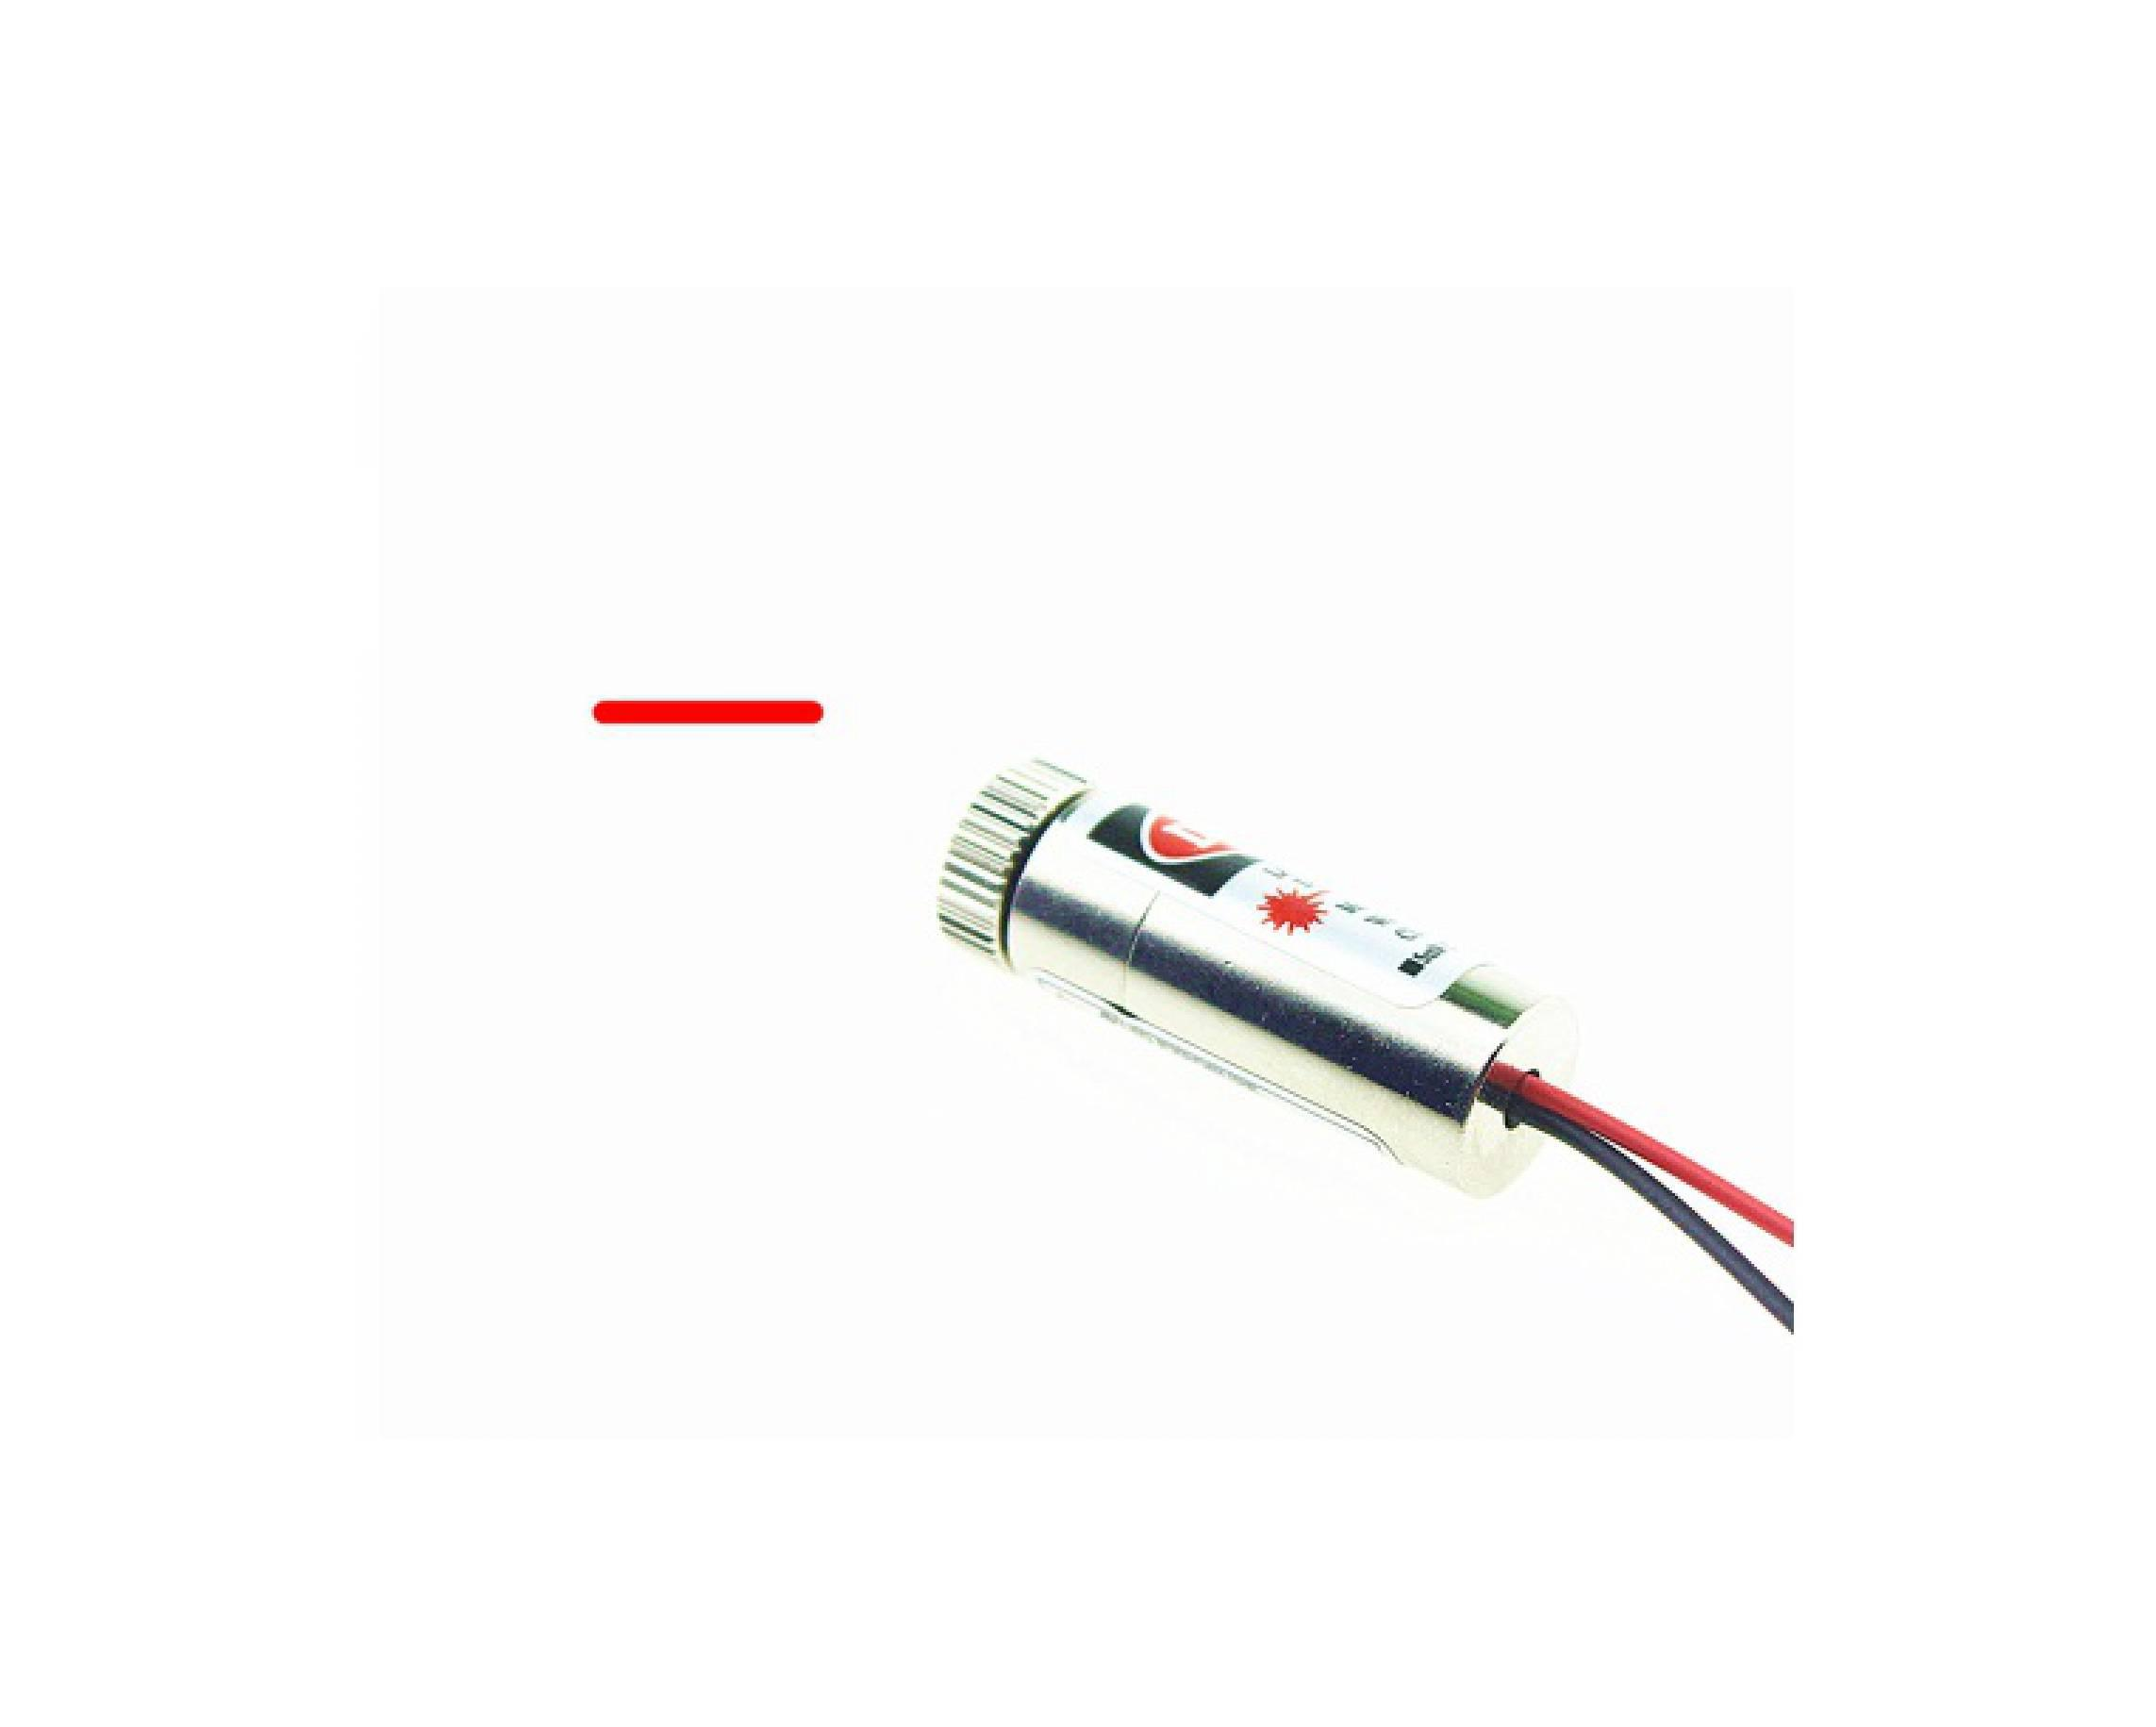 10 Pcs WL Merah 650nm 6mm 3 V 5 MW Mini Laser Dot Diode Modul KepalaIDR93000